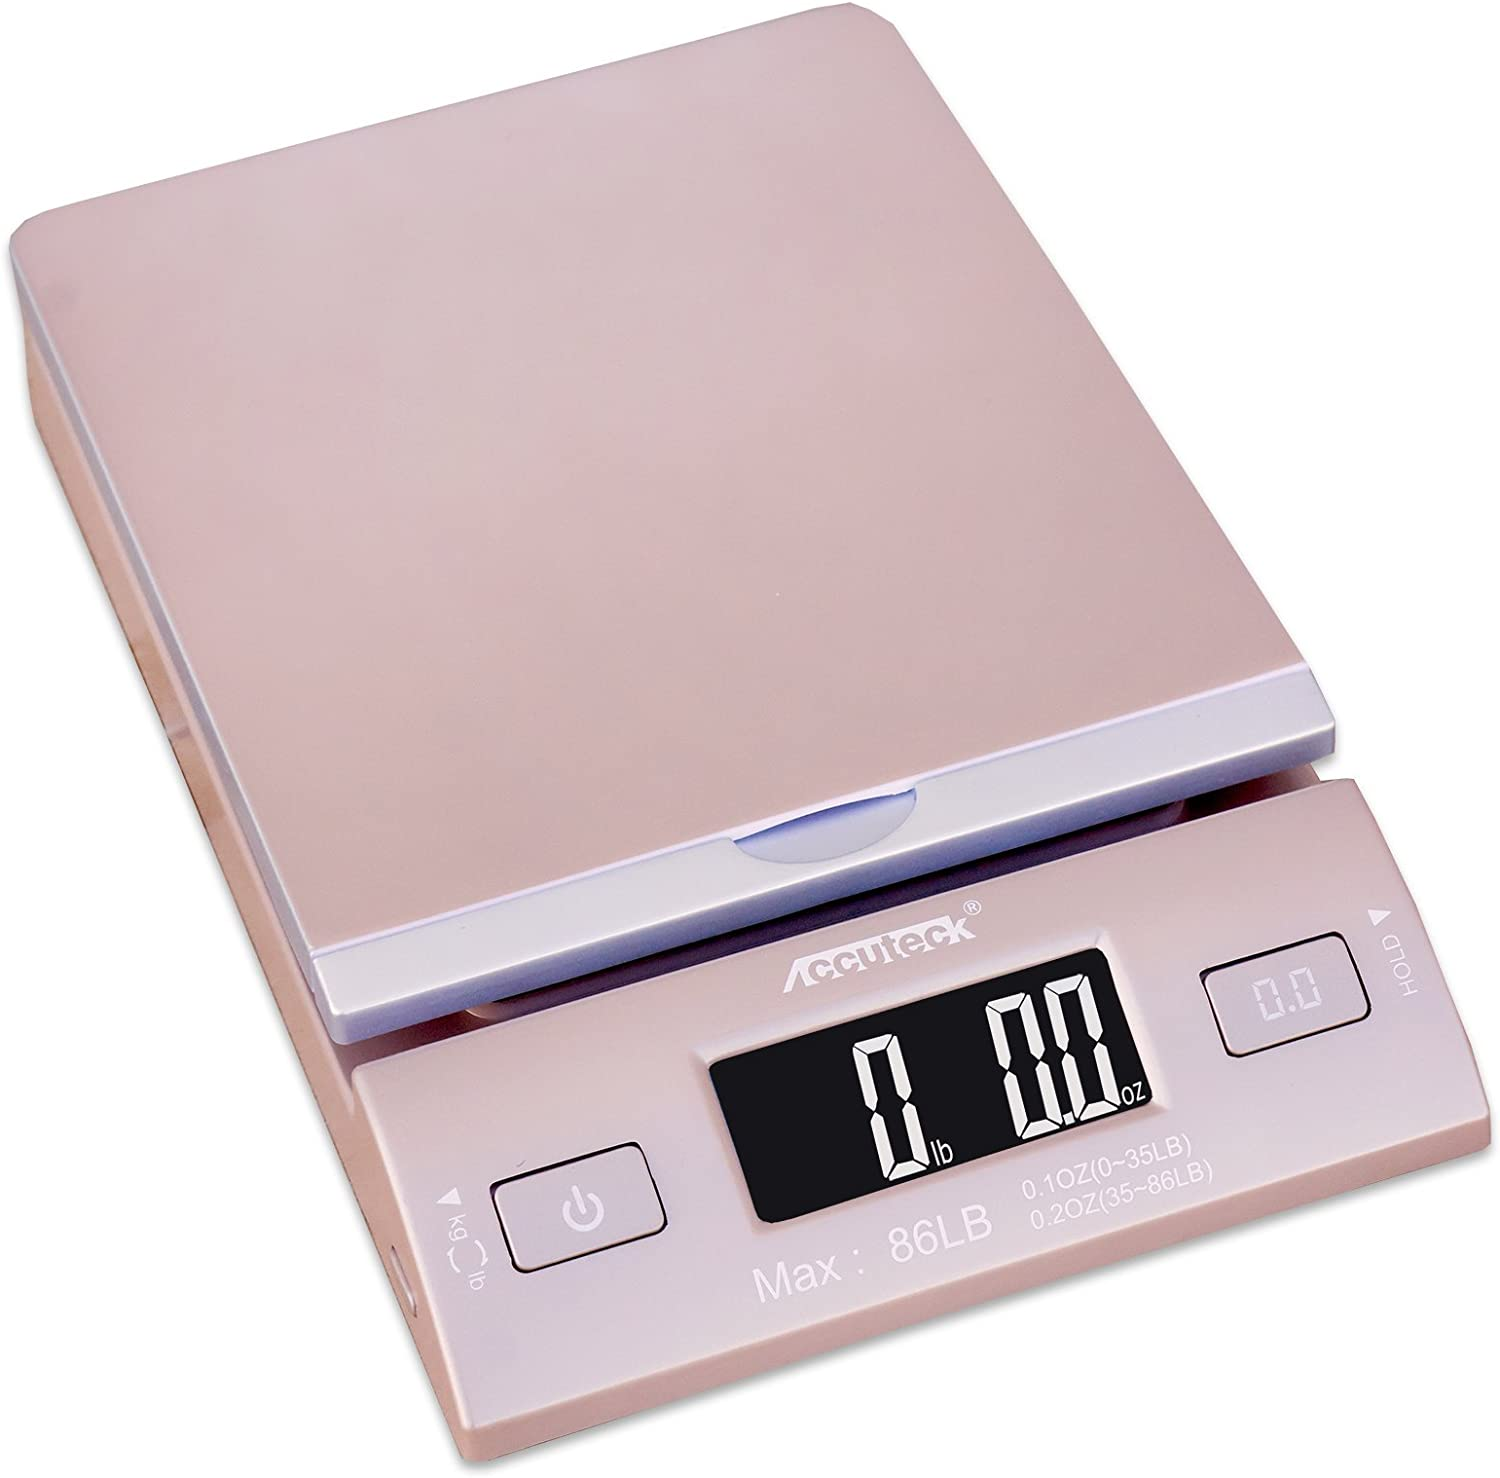 Accuteck DreamGold 86 Lbs Digital Postal Scale Shipping Scale Postage with USB&AC Adapter, Limited Edition: Office Products